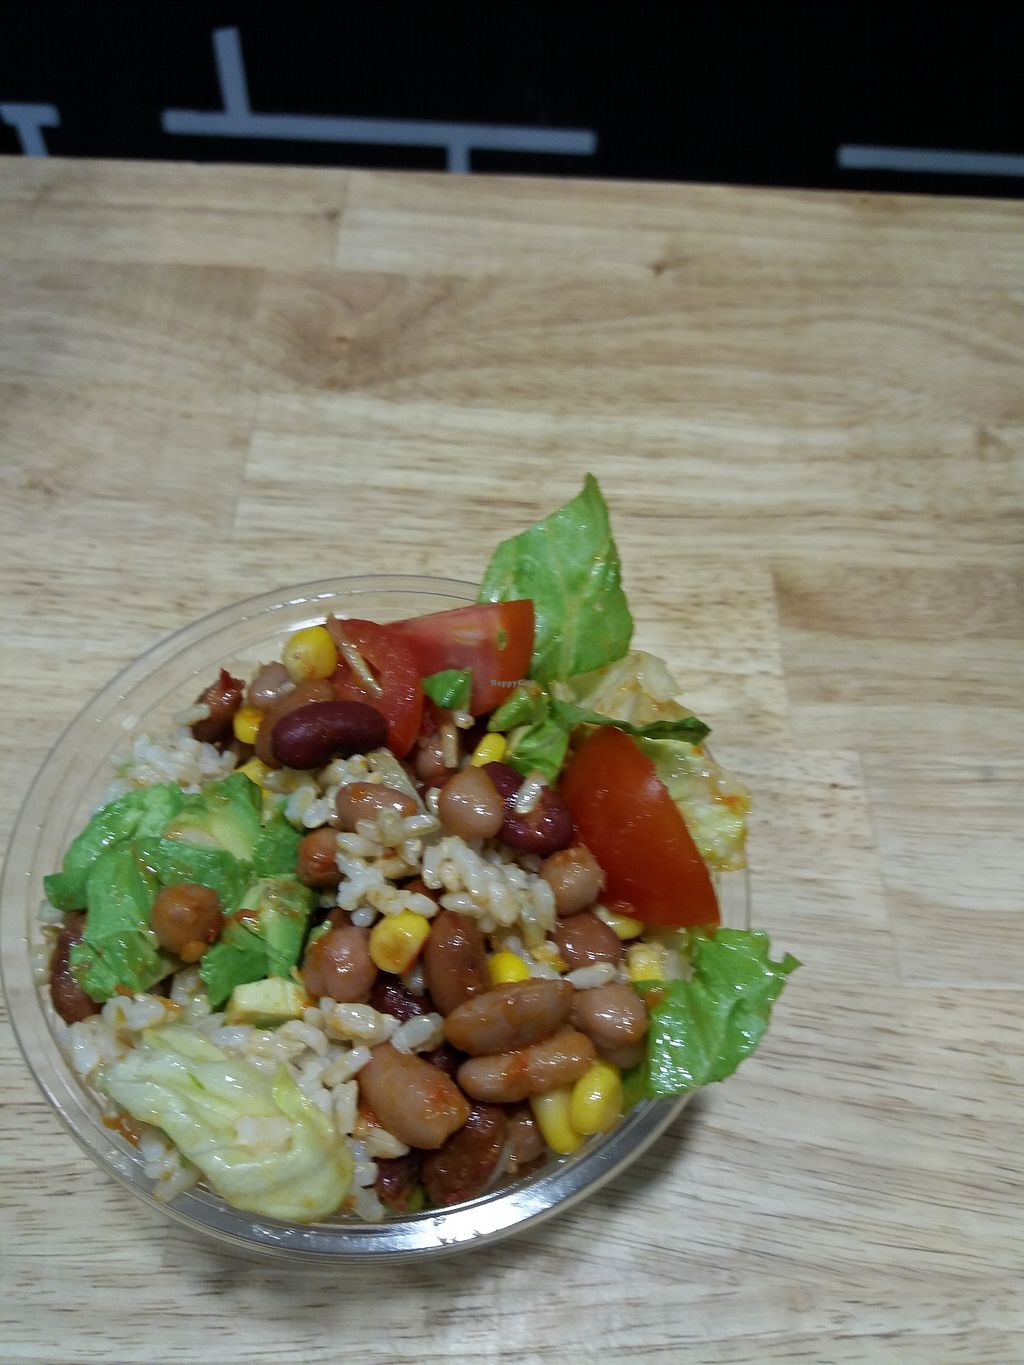 """Photo of Brew Street  by <a href=""""/members/profile/veganvirtues"""">veganvirtues</a> <br/>Kidney bean, corn, brocolli and greens salad <br/> June 27, 2017  - <a href='/contact/abuse/image/76892/273897'>Report</a>"""